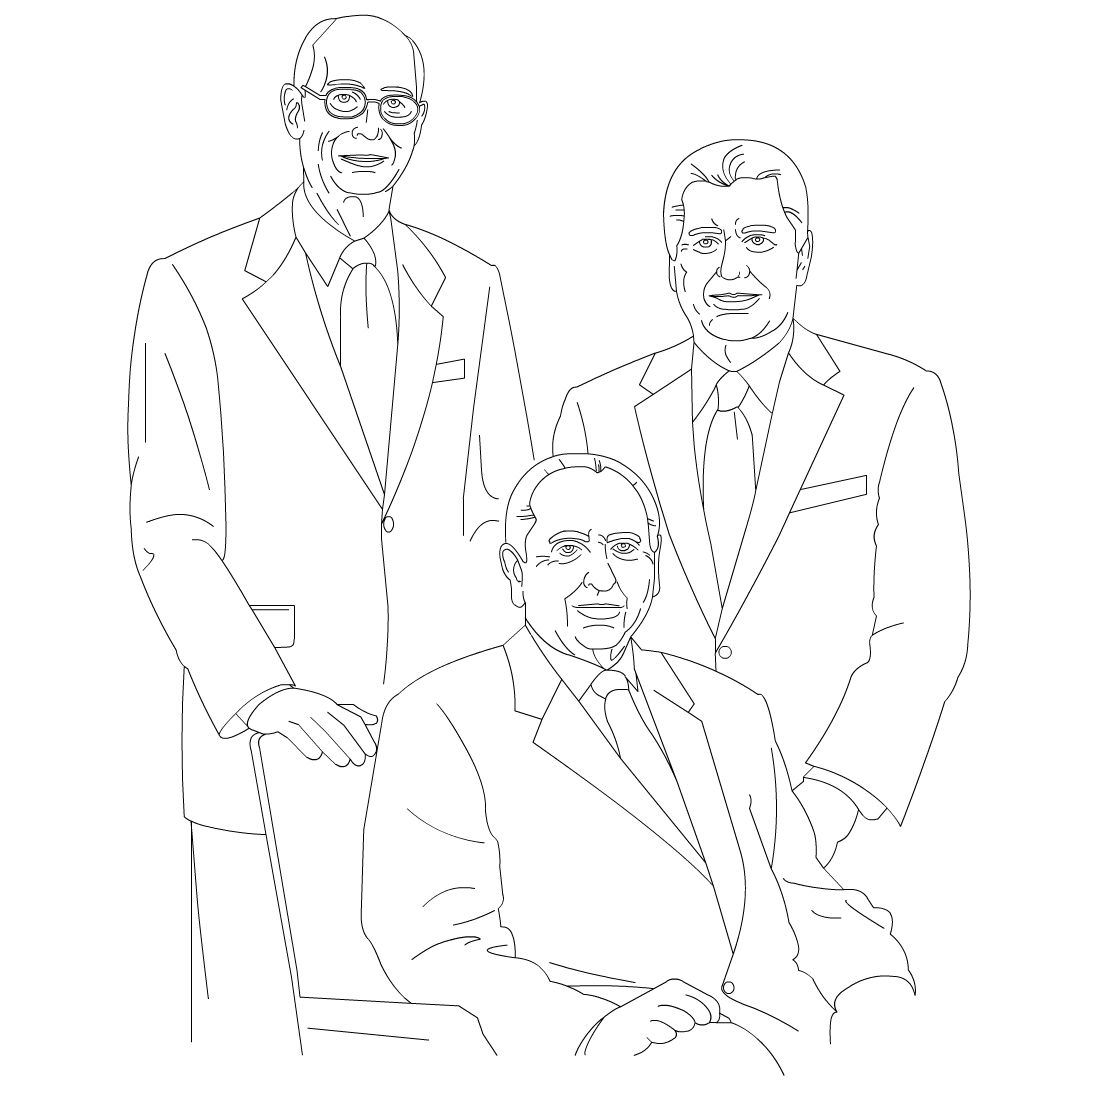 small resolution of free lds clipart to color for primary children first presidency monson eyring uchtdorf